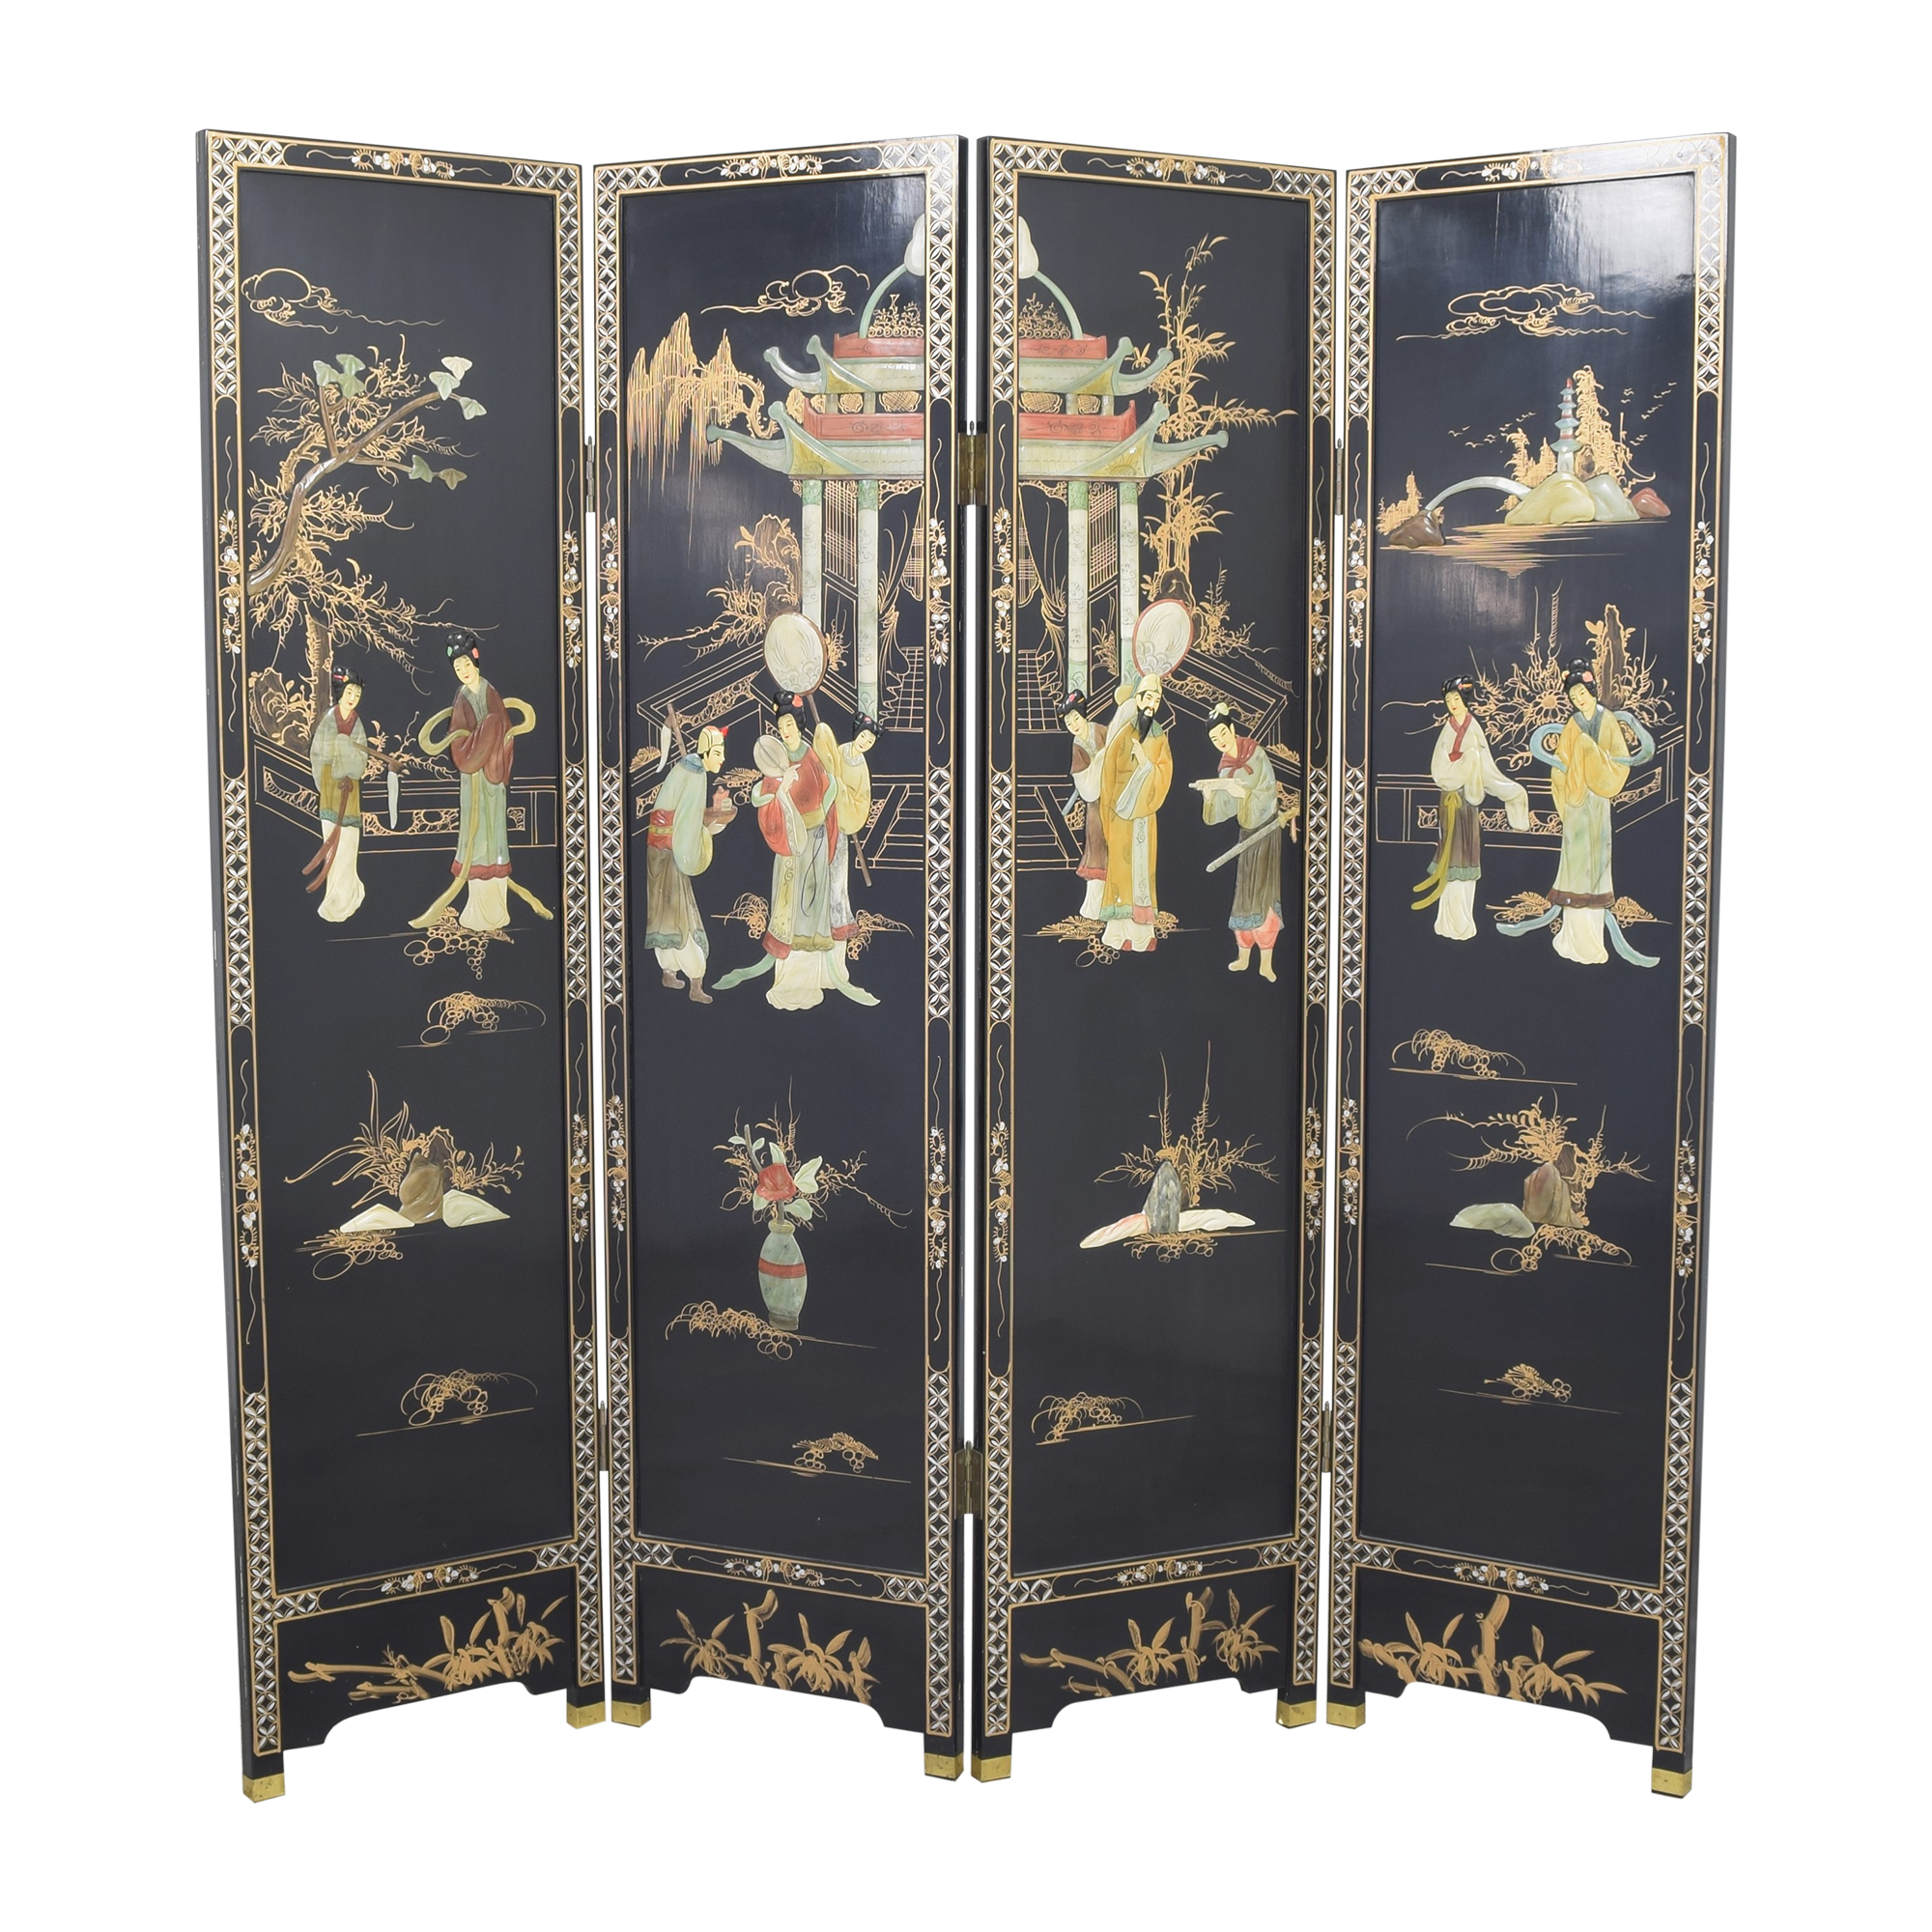 Decorative Four Panel Divider on sale